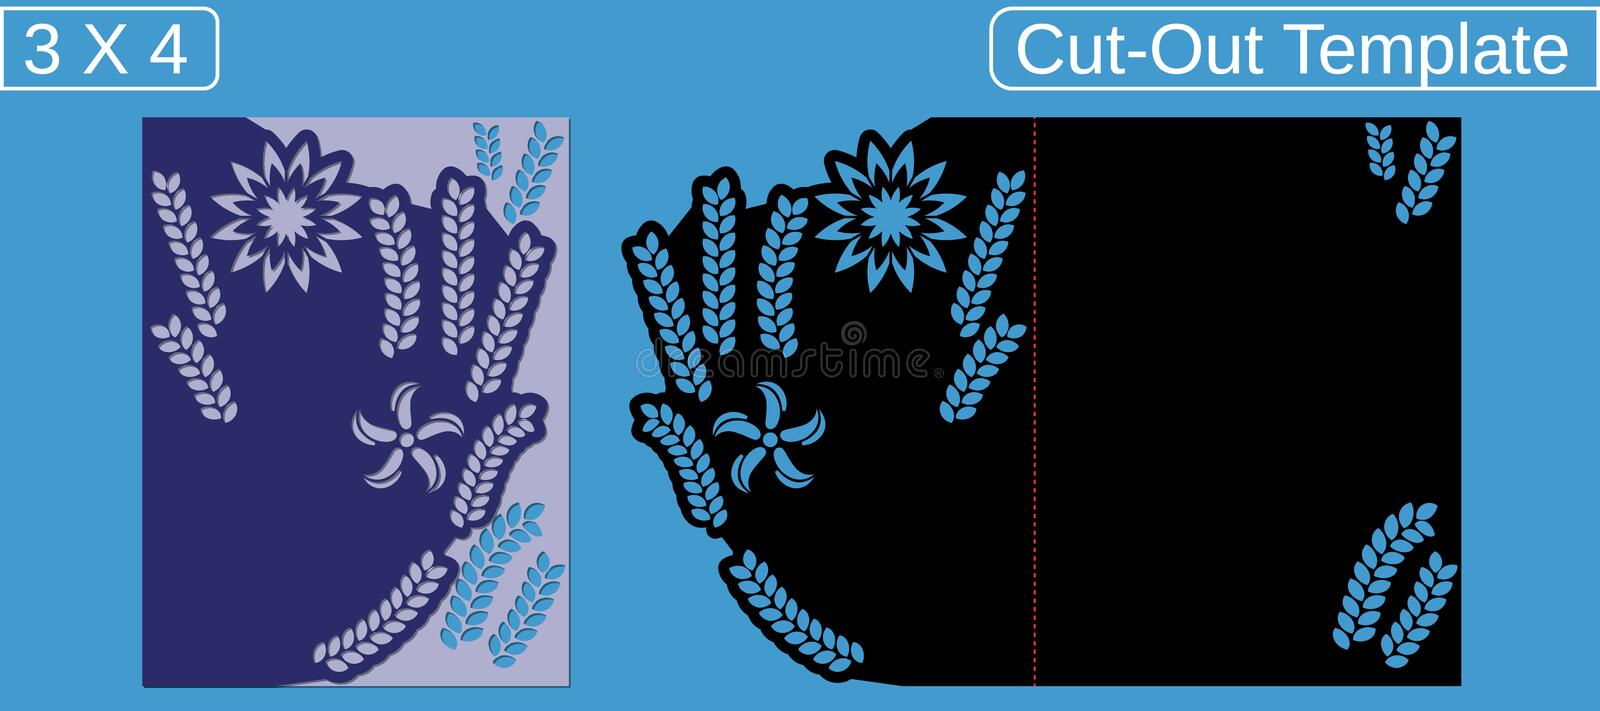 Laser cut wedding invitation card template.  Cut out the paper card with floral pattern.  Greeting card with an aspect ratio of 3 royalty free stock photos